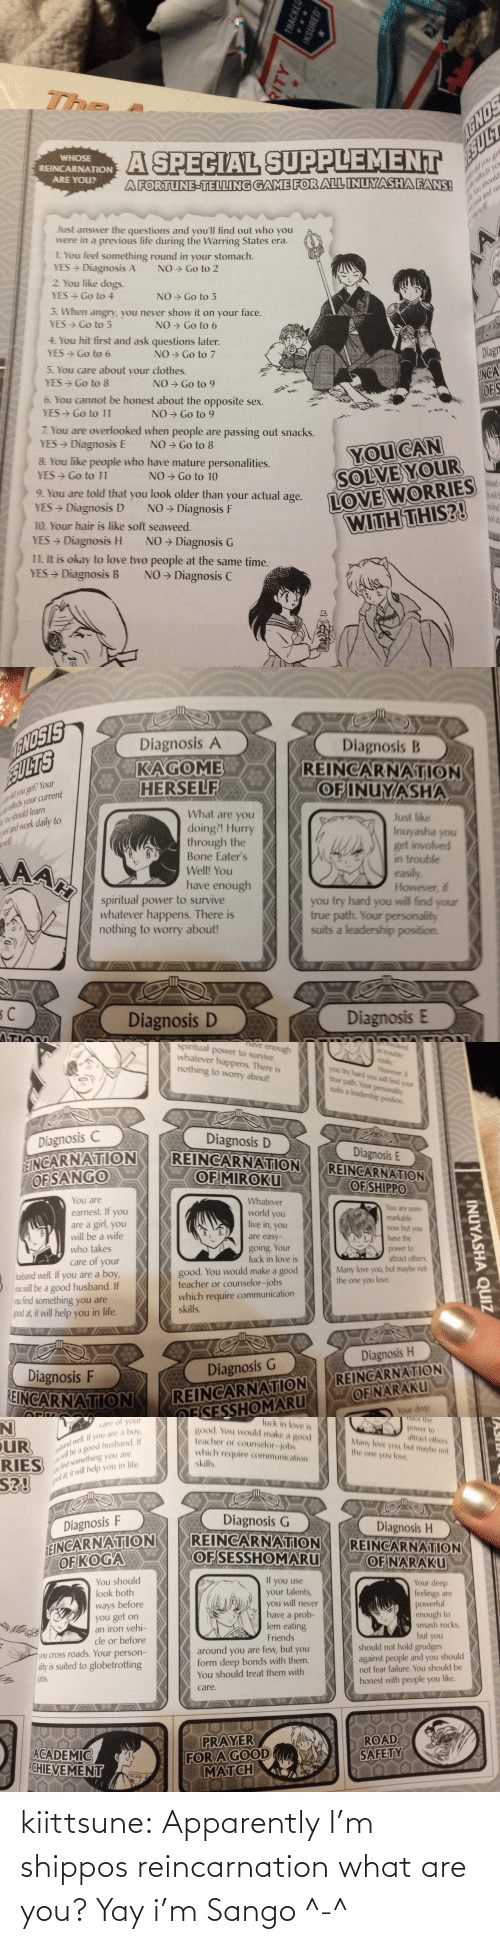 Apparently, Clothes, and Dogs: The  A SPECIAL SUPPLEMENT  AGNOS  ESULT  WHOSE  REINCARNATION  ARE YOU?  you ge  lests yo  u should  A FORTUNE-TELLING GAME FOR ALL INUYASHA FANS!  Just answer the questions and you'll find out who you  were in a previous life during the Warring  1. You feel something round in your stomach.  YES Diagnosis A  2. You like dogs.  past and we  tes era  NO > Go to 2  YES → Go to 4  NO → Go to 3  3. When angry, you never show it on your face.  YES> Go to 5  NO → Go to 6  4. You hit first and ask questions later.  YES Go to 6  NO → Go to 7  5. You care about your clothes.  Diagn  YES> Go to 8  NO → Go to 9  INGA  OFS  6. You cannot be honest about the opposite sex.  YES  Go to 11  NO → Go to 9  7. You are overlooked when people are passing out snacks.  YES Diagnosis E  8. You like people who have mature personalities.  YES Go to 11  NO → Go to 8  YOU CAN  NO → Go to 10  SOLVE YOUR  dand  9. You are told that you look older than your  YES Diagnosis D  LOVE WORRIES  WITH THIS?!  actual  NO → Diagnosis F  age.  10. Your hair is like soft seaweed.  wind  and at  YES Diagnosis H  NO → Diagnosis G  11. It is okay to love two people at the same time.  YES Diagnosis B  NO → Diagnosis C  TRACKED  INSURED   ENOSIS  SULTS  Diagnosis A  Diagnosis B  REINCARNATION  OF INUYASHA  KAGOME  HERSELF  r did you get? Your  refects your current  Au should learn  axt and work daily to  What are you  Just like  Inuyasha you  get involved  in trouble  easily.  However, if  you try hard you will find your  true path. Your personality  suits a leadership position.  doing?! Hurry  through the  Bone Eater's  AAH  Well! You  have enough  spiritual power to survive  whatever happens. There is  nothing to worry about!  Diagnosis D  Diagnosis E  ה   hoked  in trouble  dve enough  power to survive  whatever happens. There is  spiritual  easily  However i  you try hand you will find your  true path. Your personality  suits a leadership position.  nothing to worry about!  Diagn